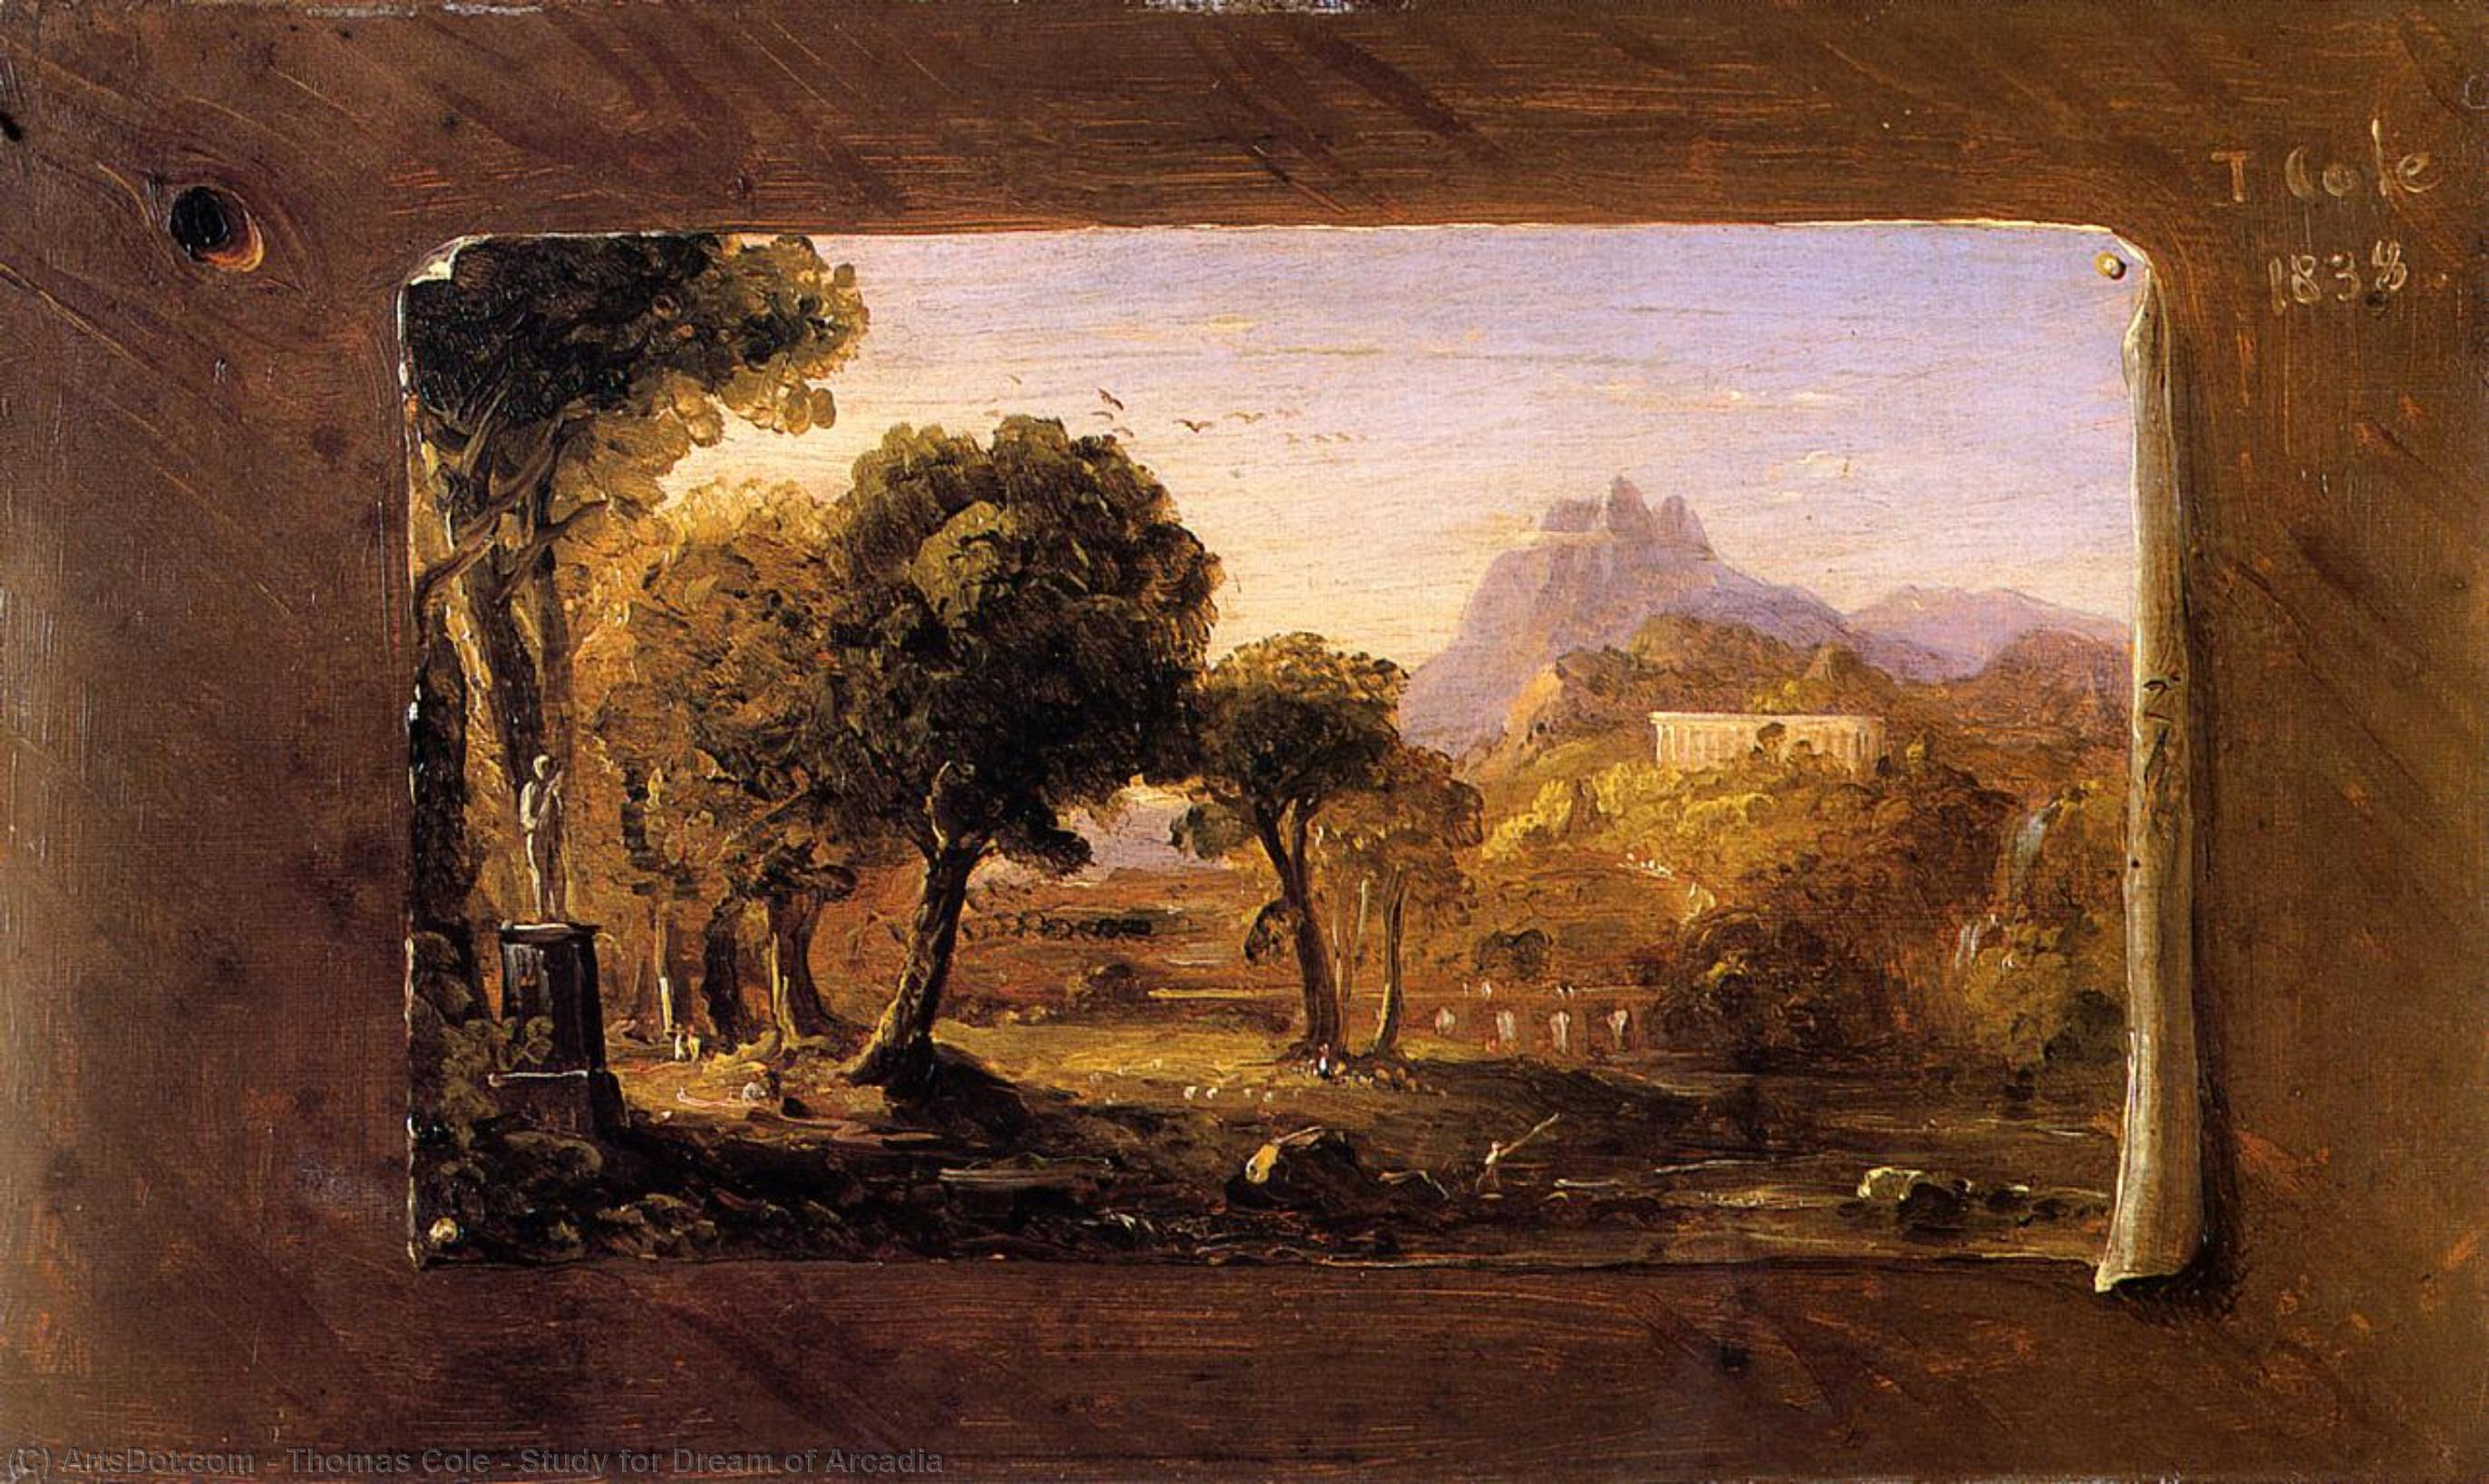 Wikioo.org - The Encyclopedia of Fine Arts - Painting, Artwork by Thomas Cole - Study for Dream of Arcadia